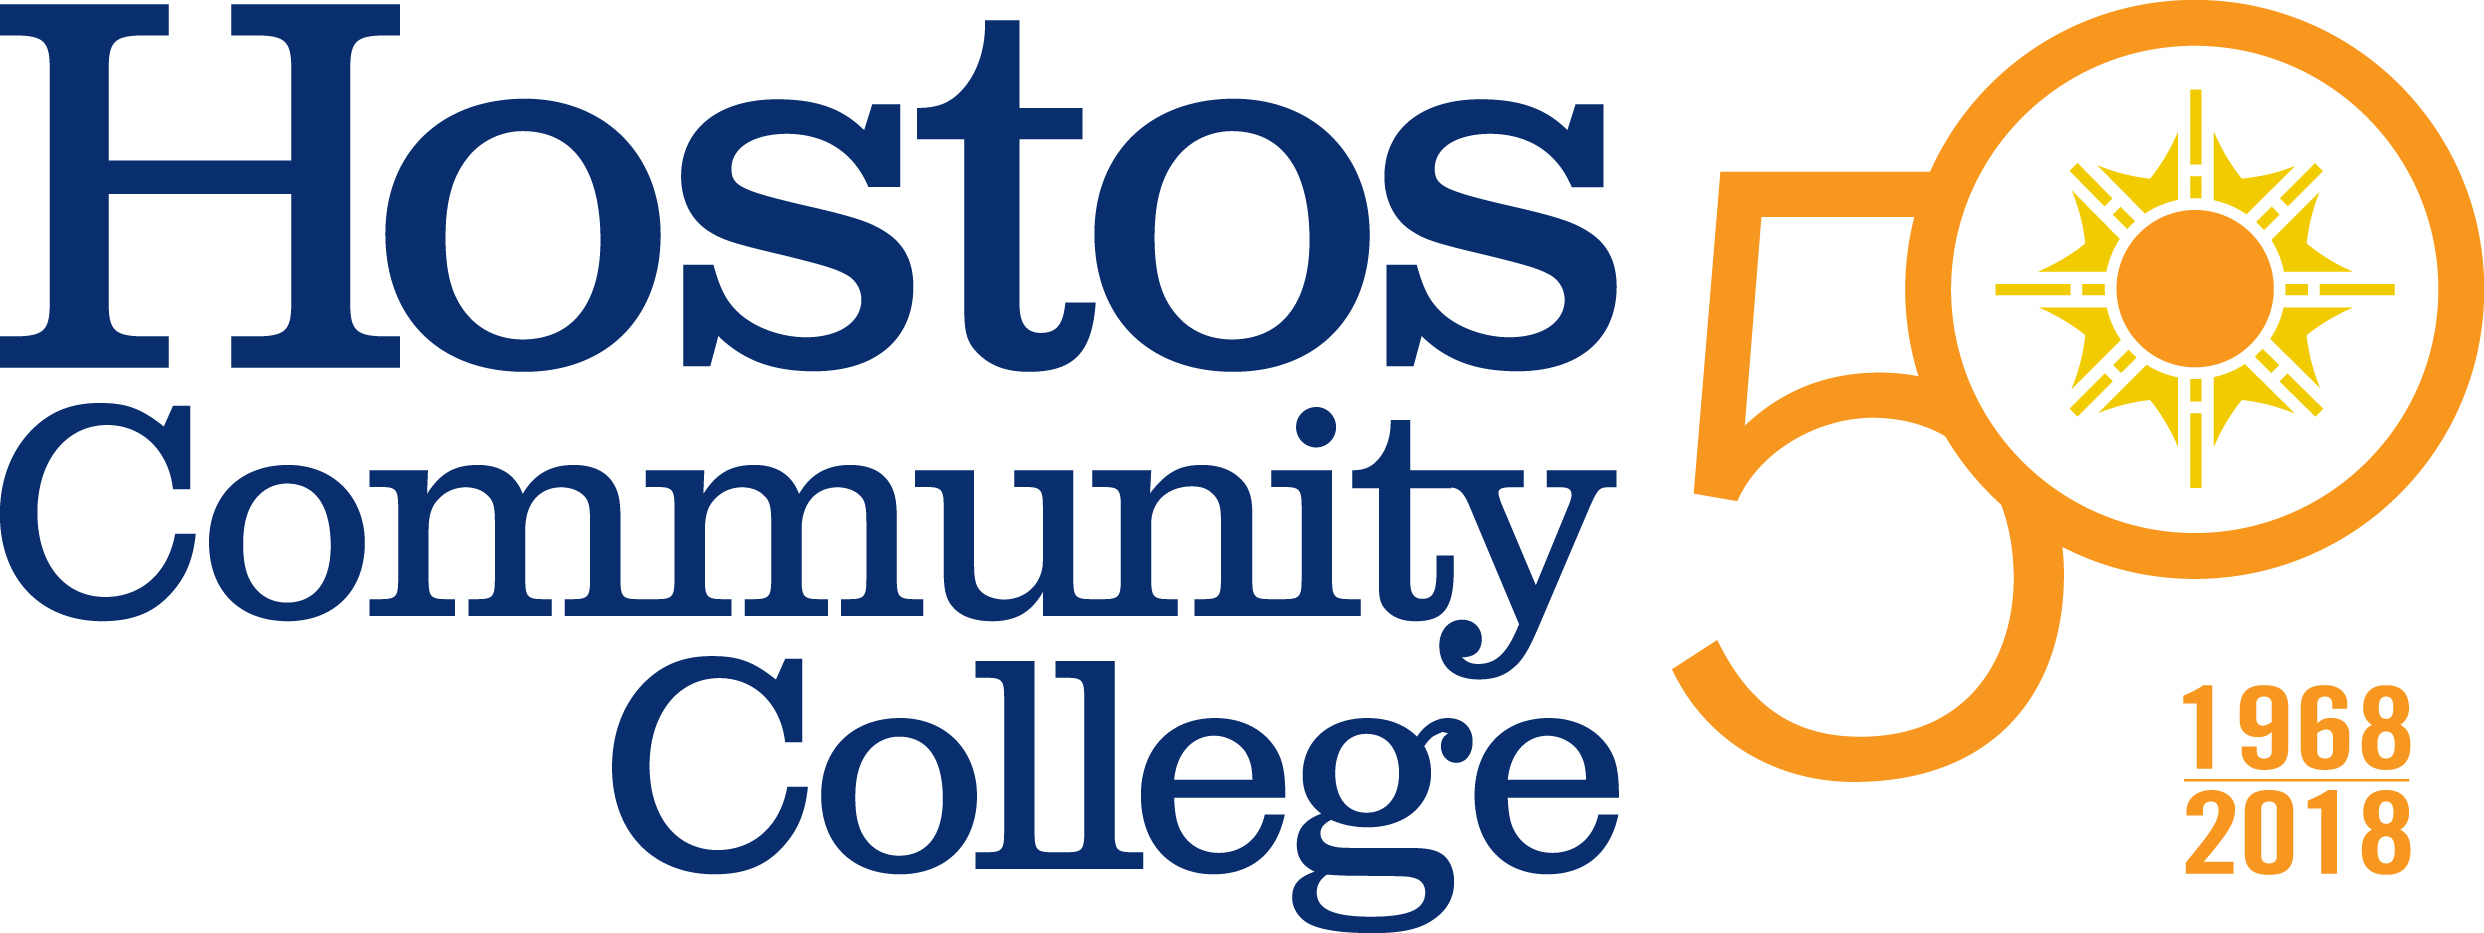 Hostos50PrimaryLogo Blue294Orange144Yellow110copy